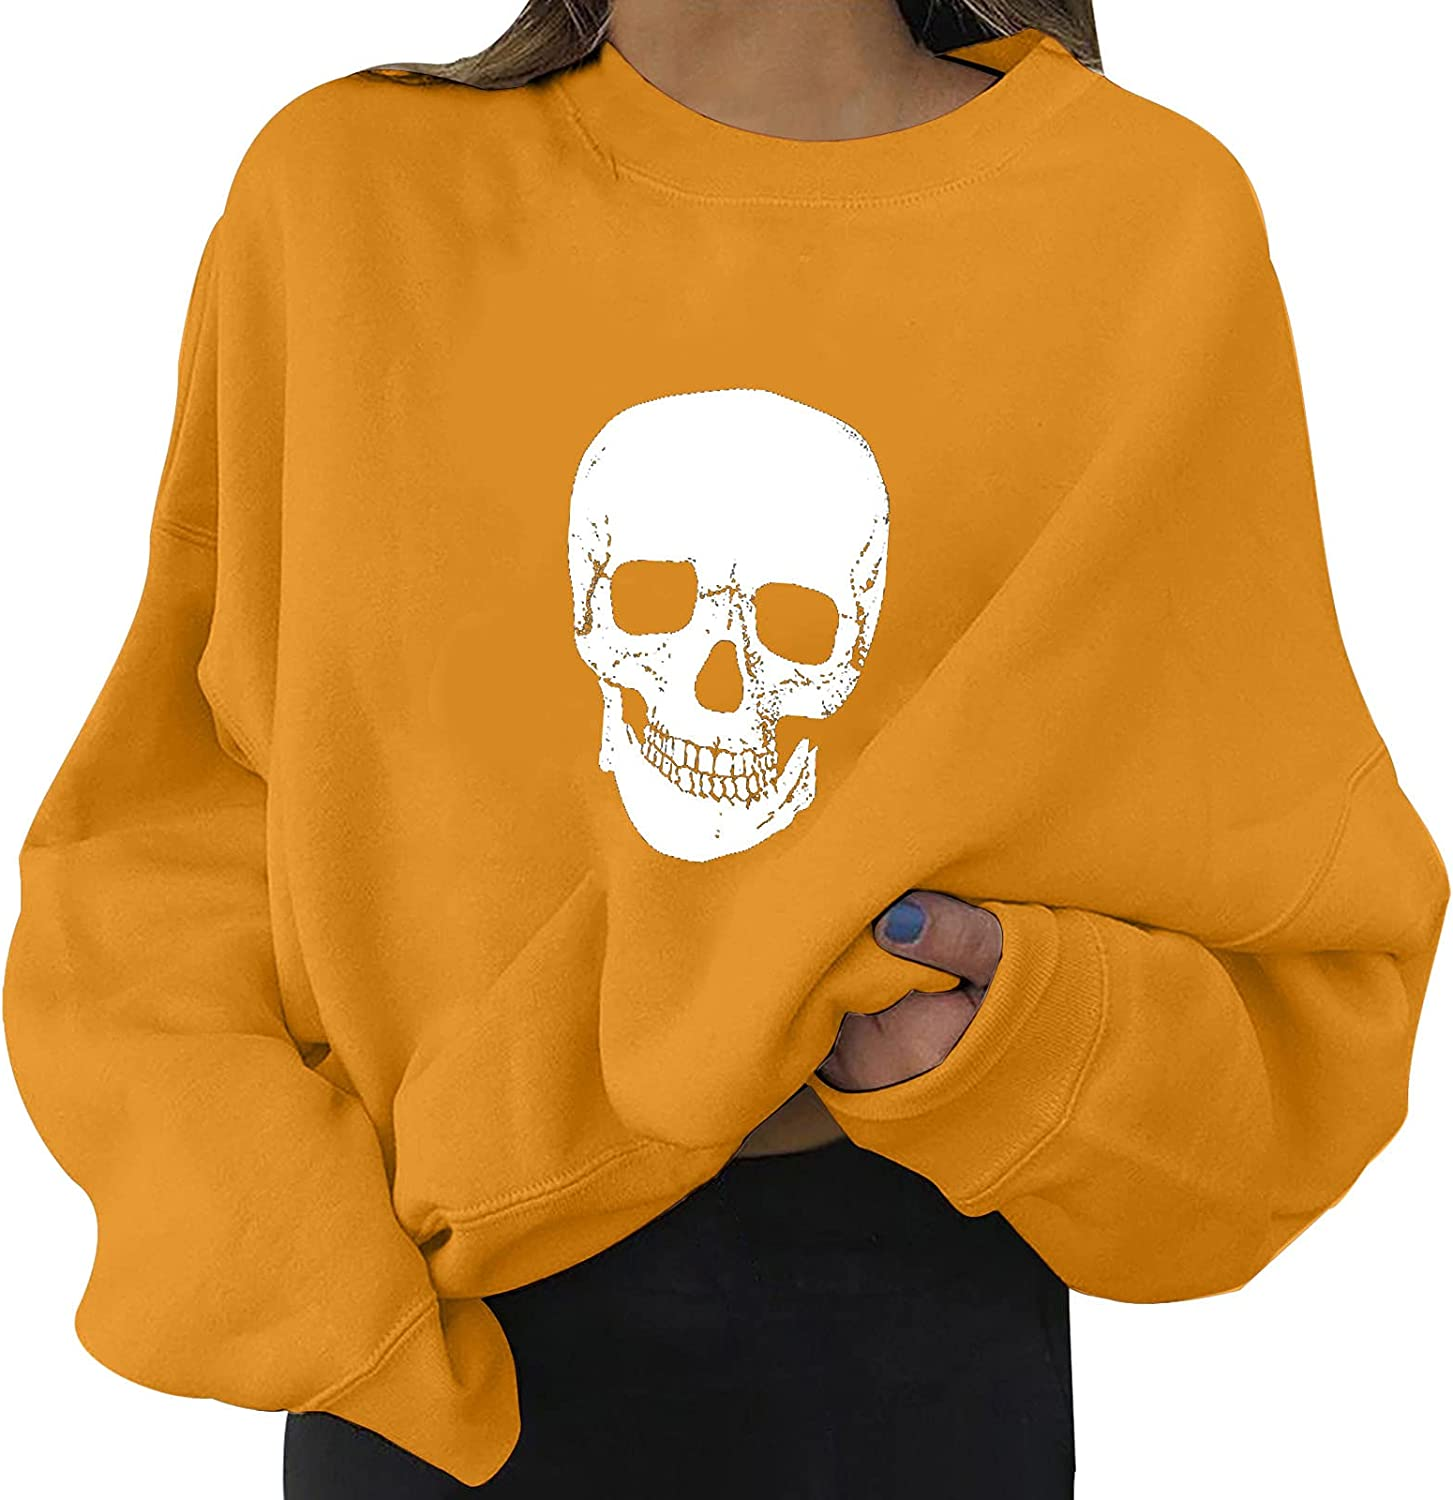 Graphic Crop Tops for Women Vintage T Sleeve Jumper Limited time List price trial price Workout Long